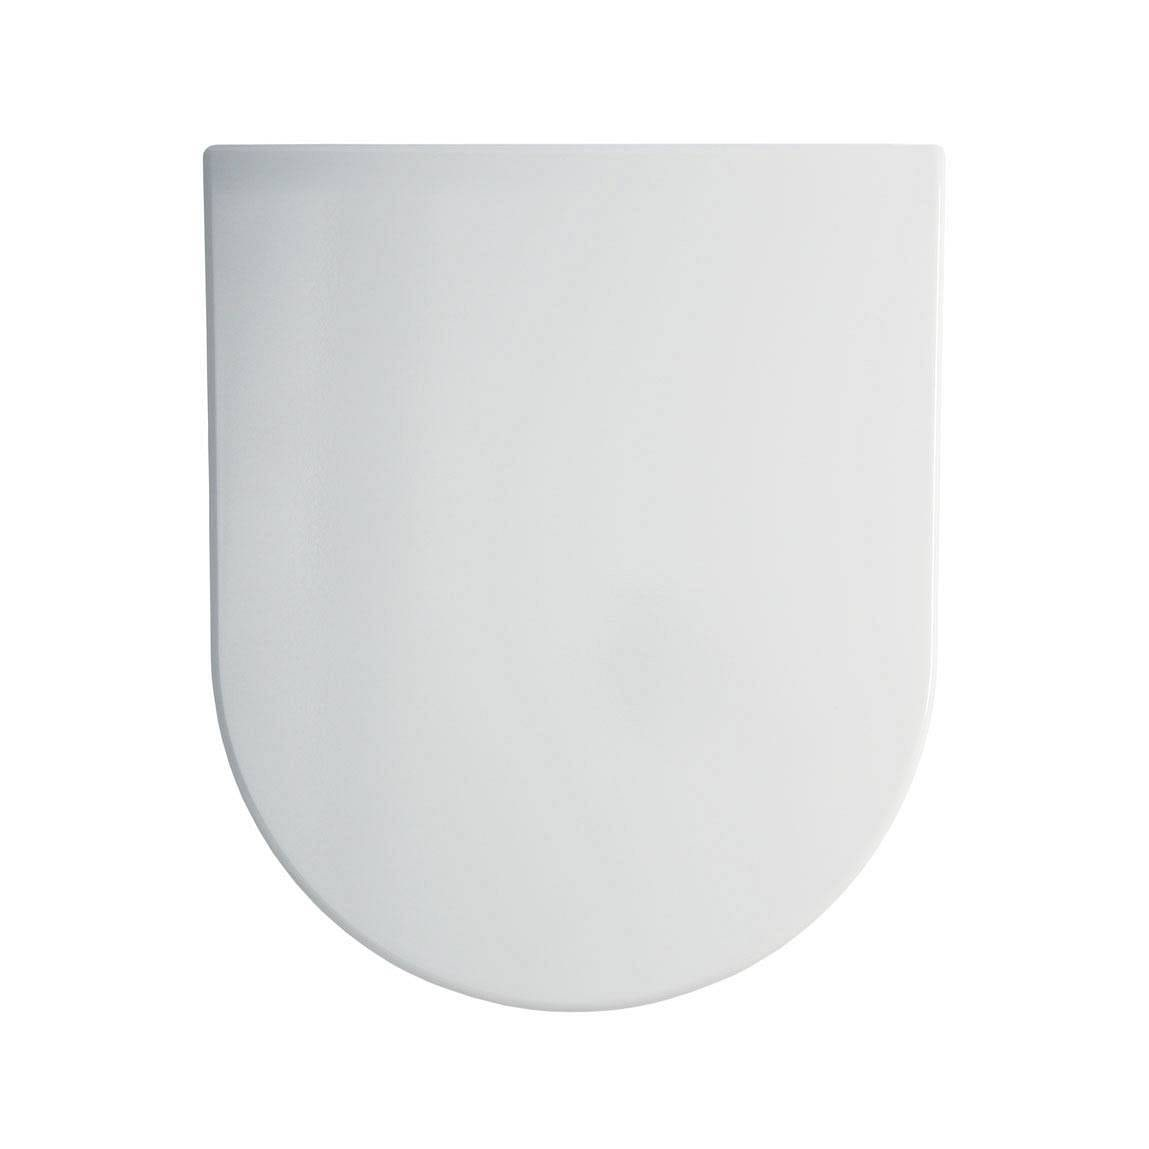 Orchard Elsdon soft close toilet seat